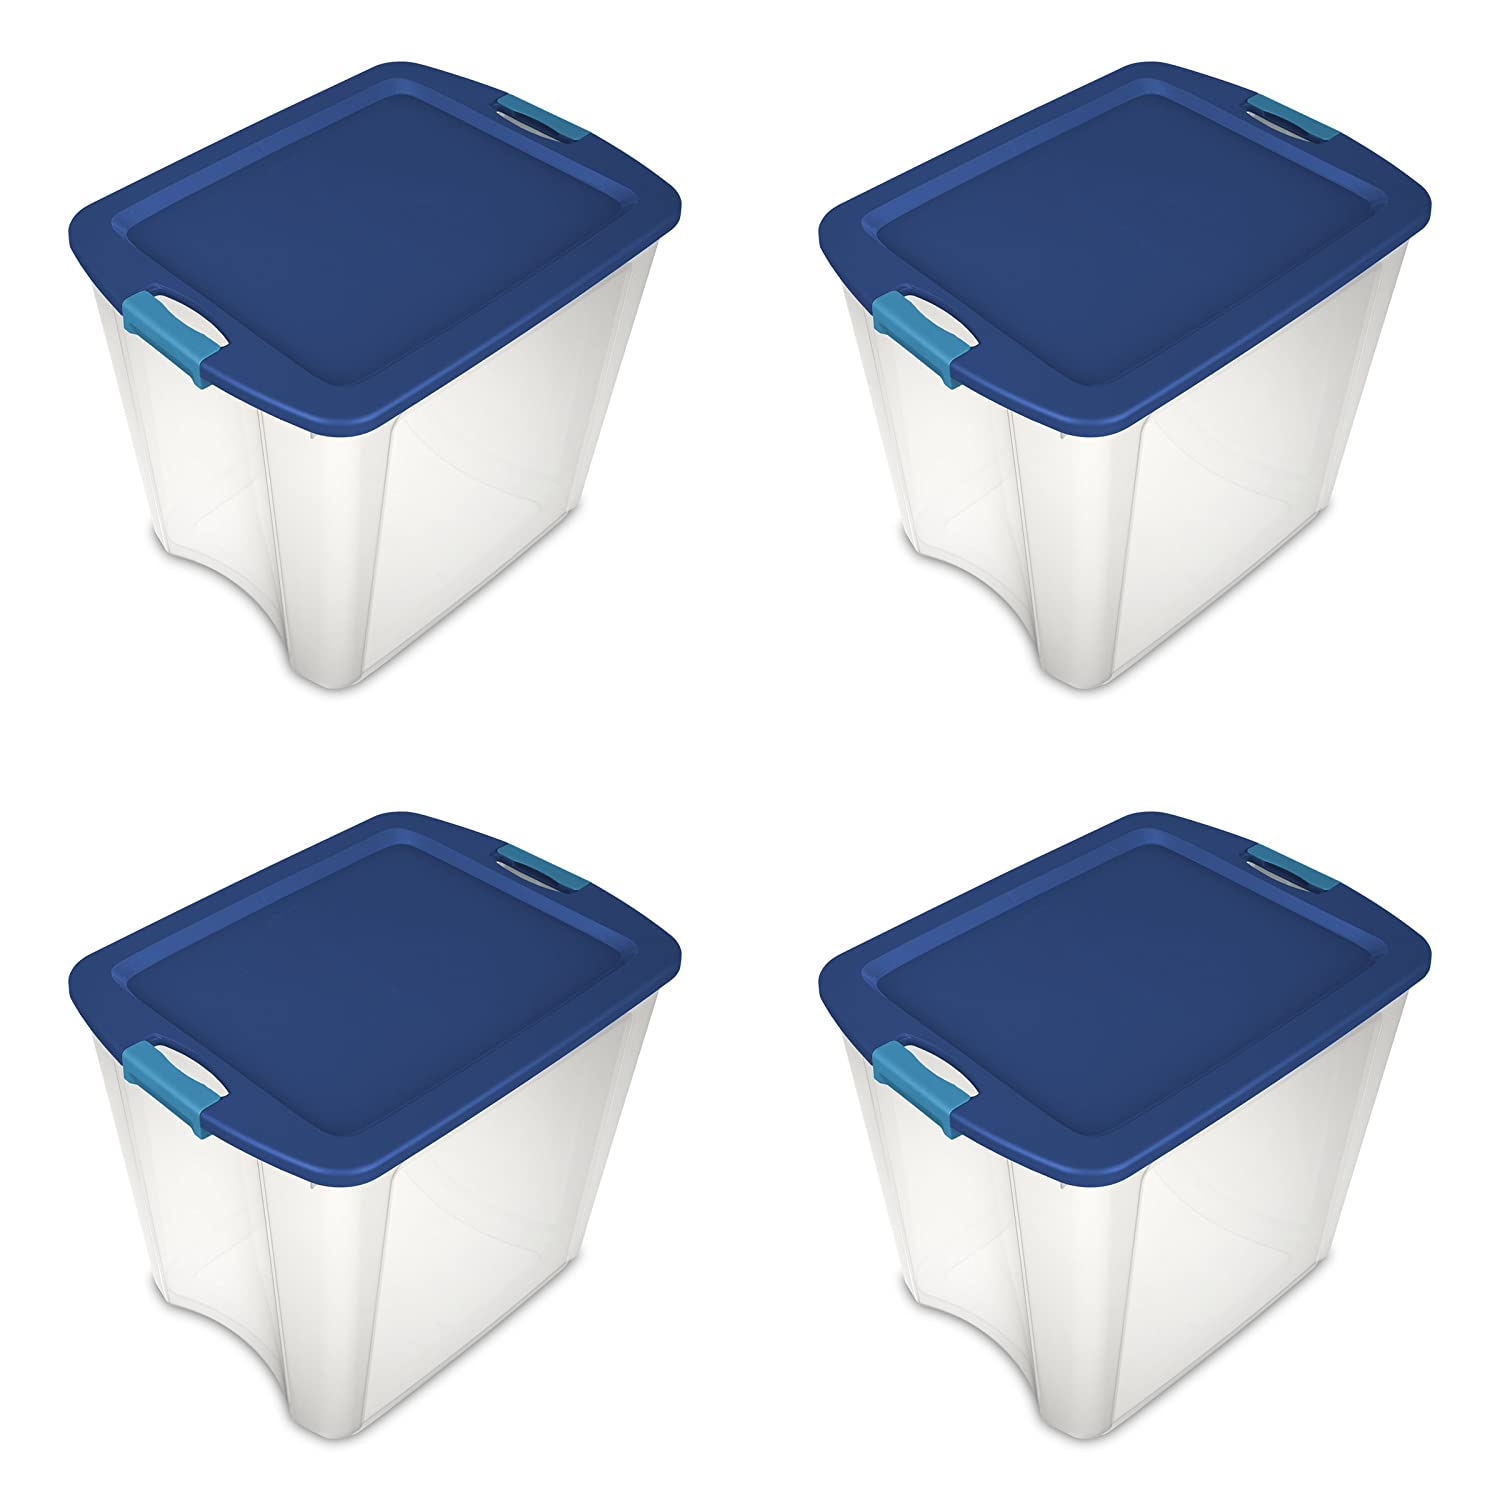 Sterilite 14489604 26 Gallon/98 Liter Latch and Carry, True Blue Lid and Clear Base with Blue Aquarium Latches, 4-Pack